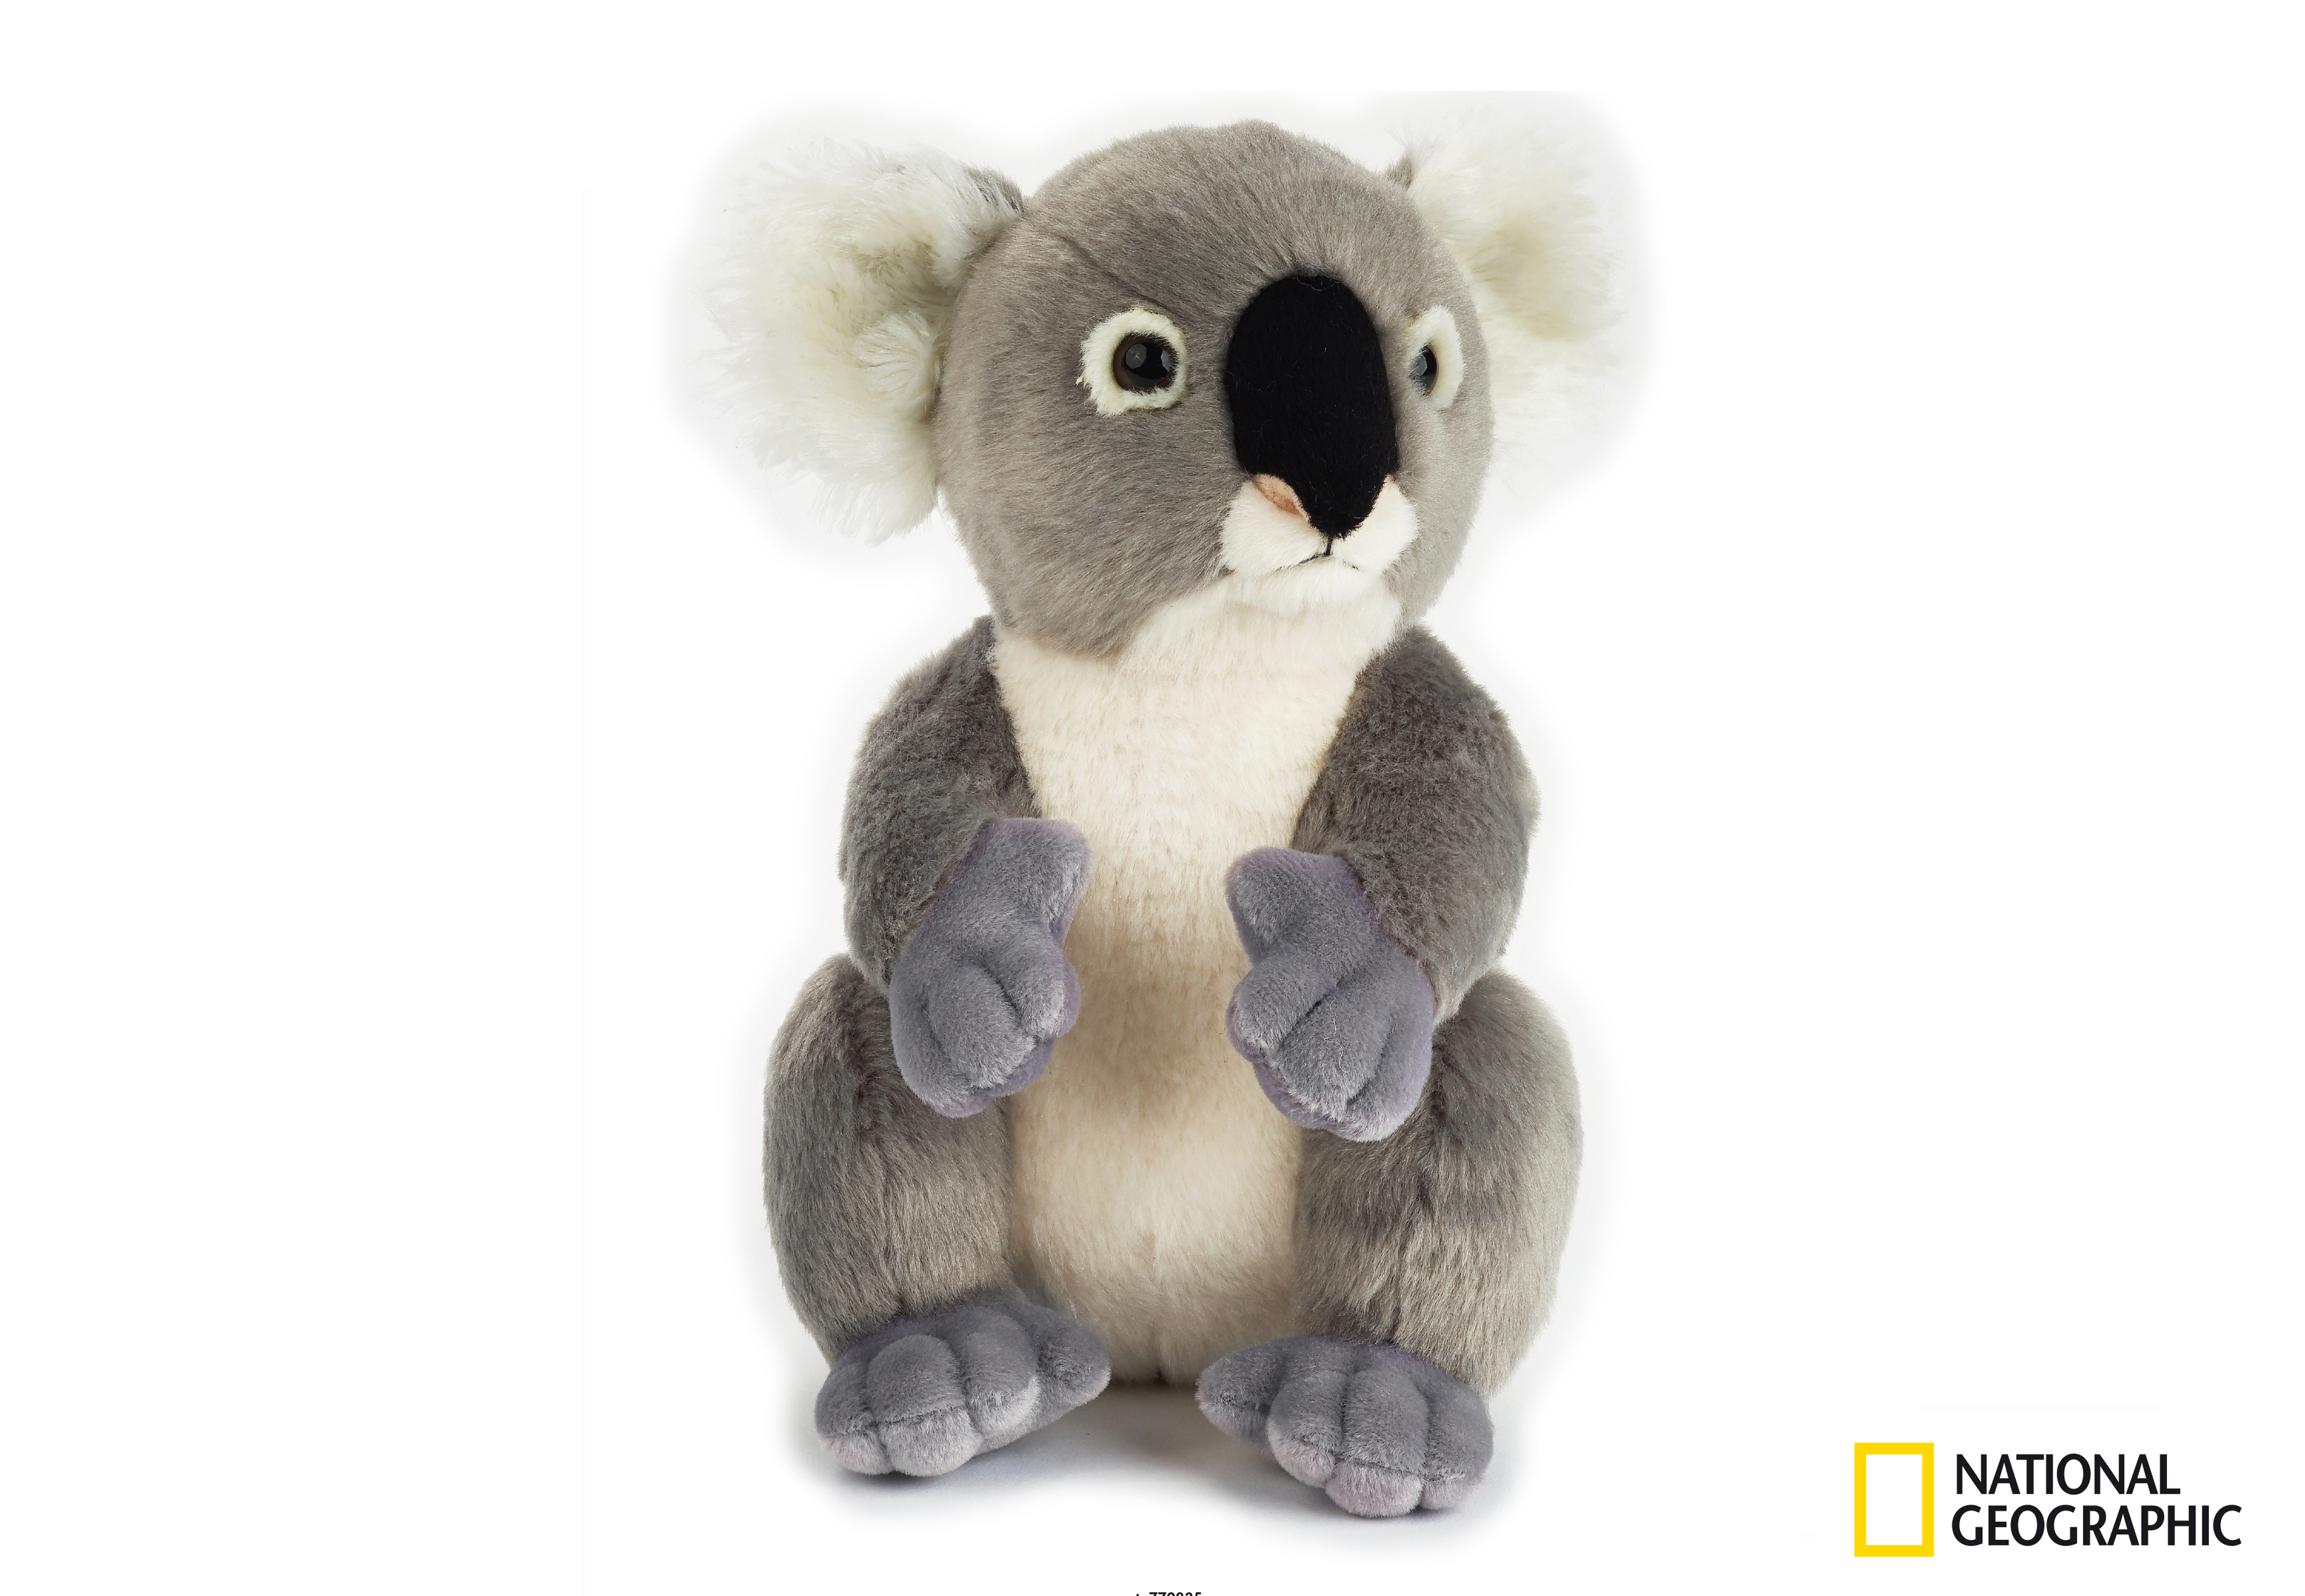 NATIONAL GEOGRAPHIC plyšák Koala 23 cm